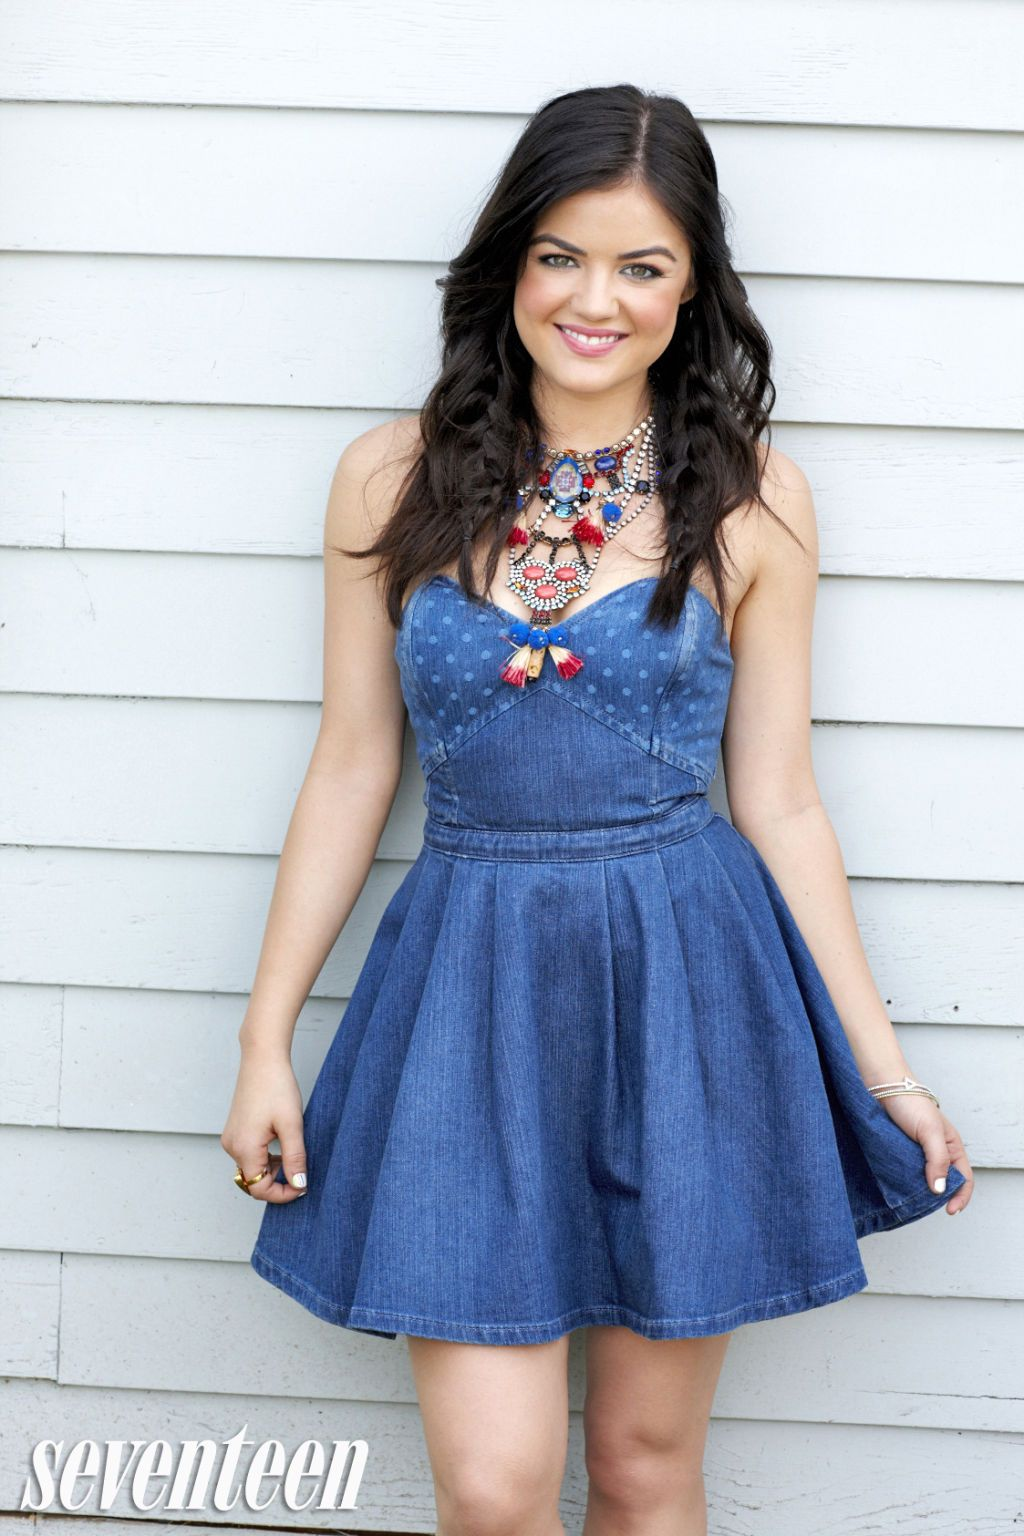 Lucy Hale Fashion Pictures - Quotes and Photos of Lucy Hale Style